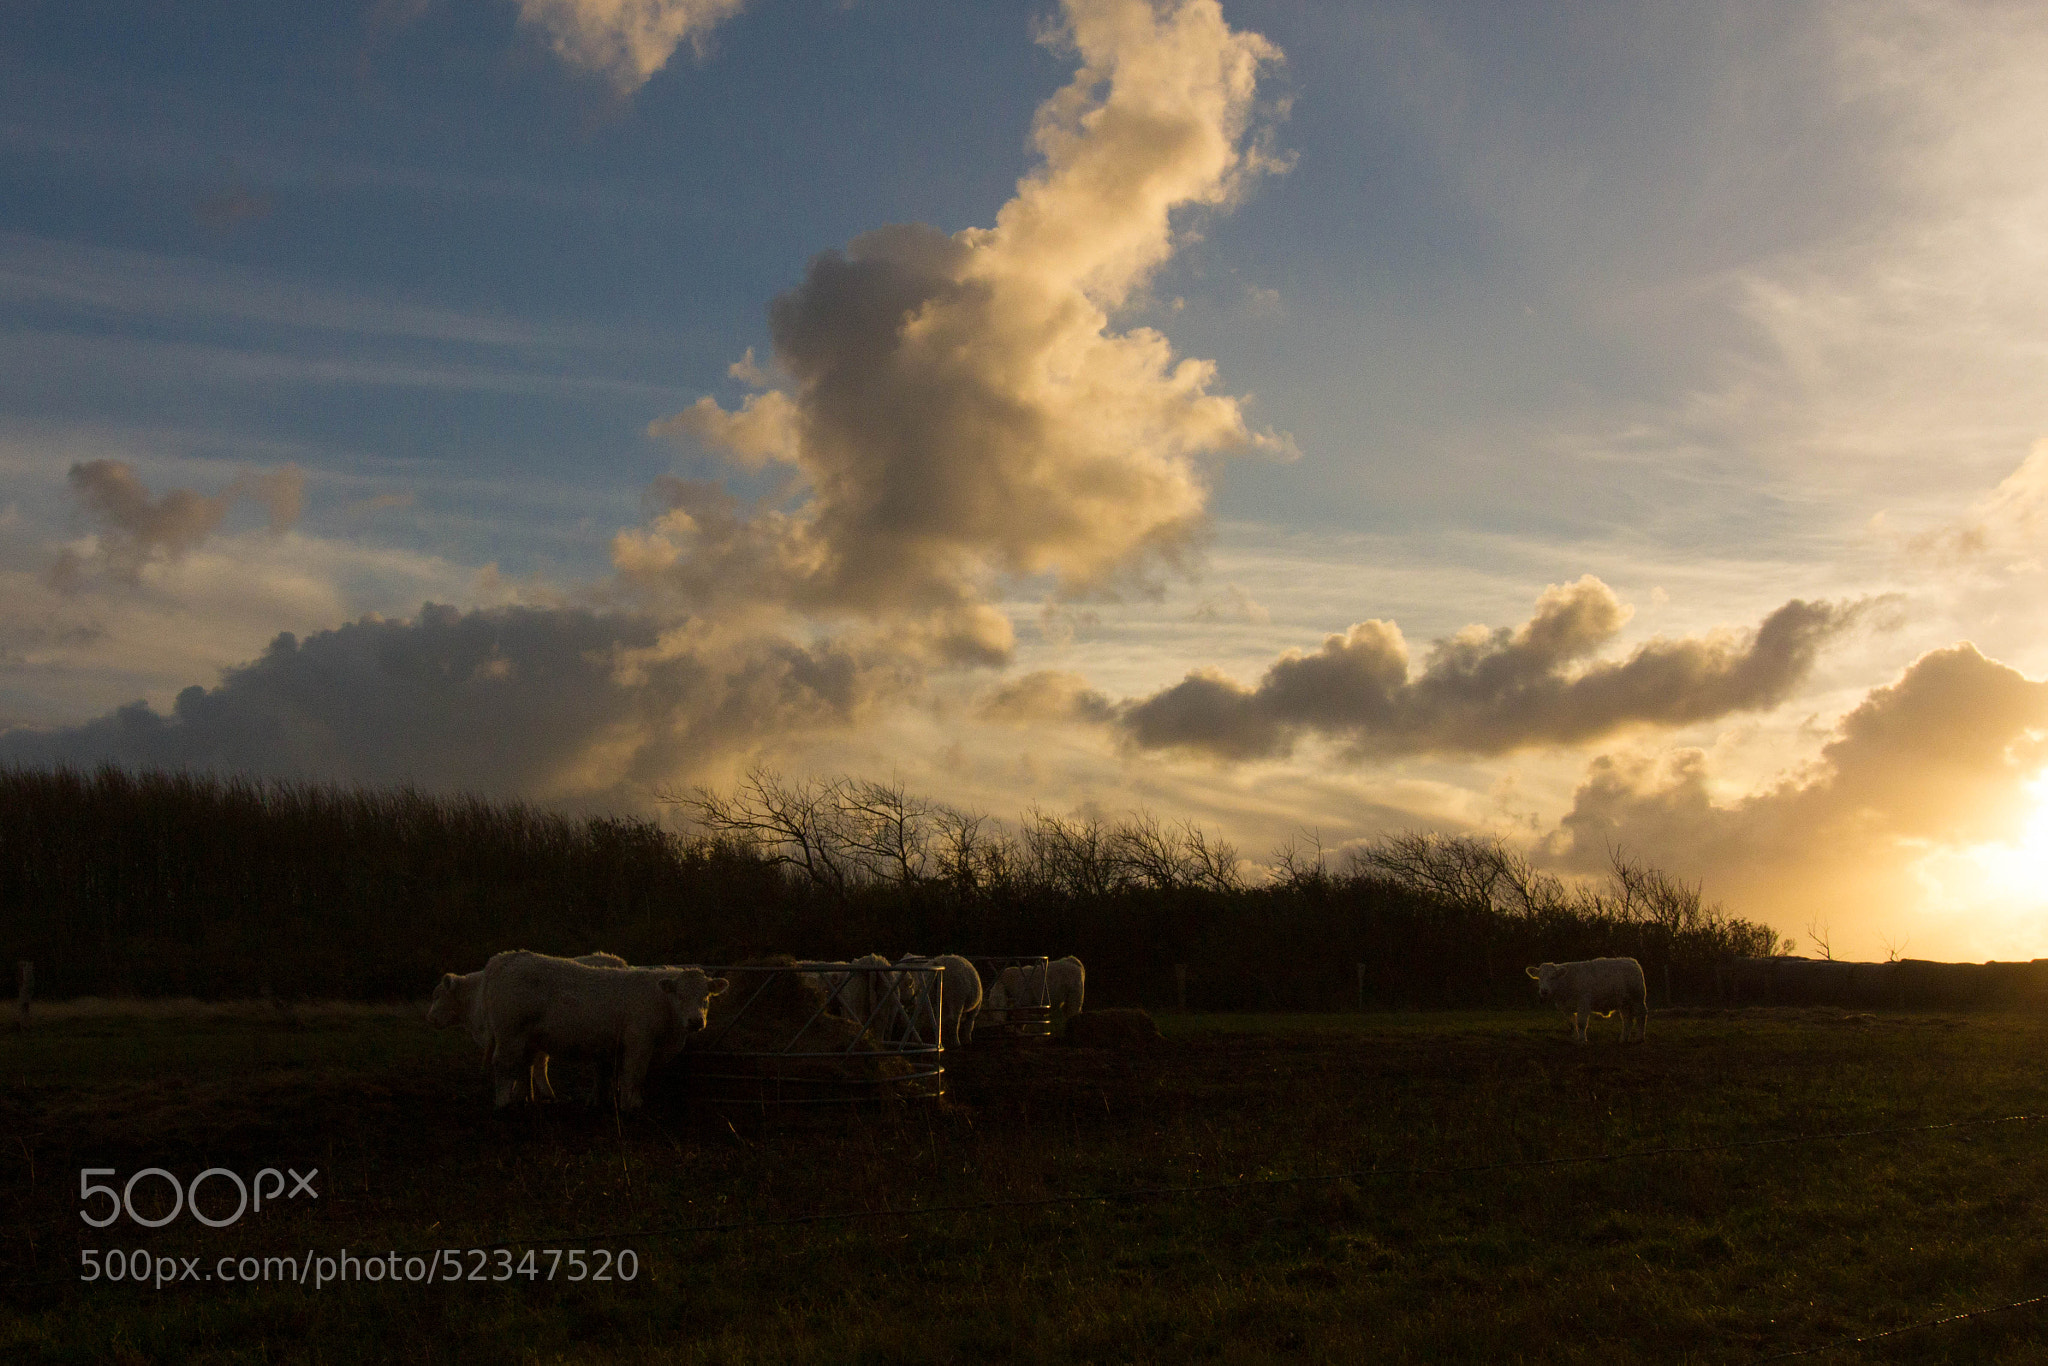 Photograph Mooncows in Sylt by Heike Kitzig on 500px